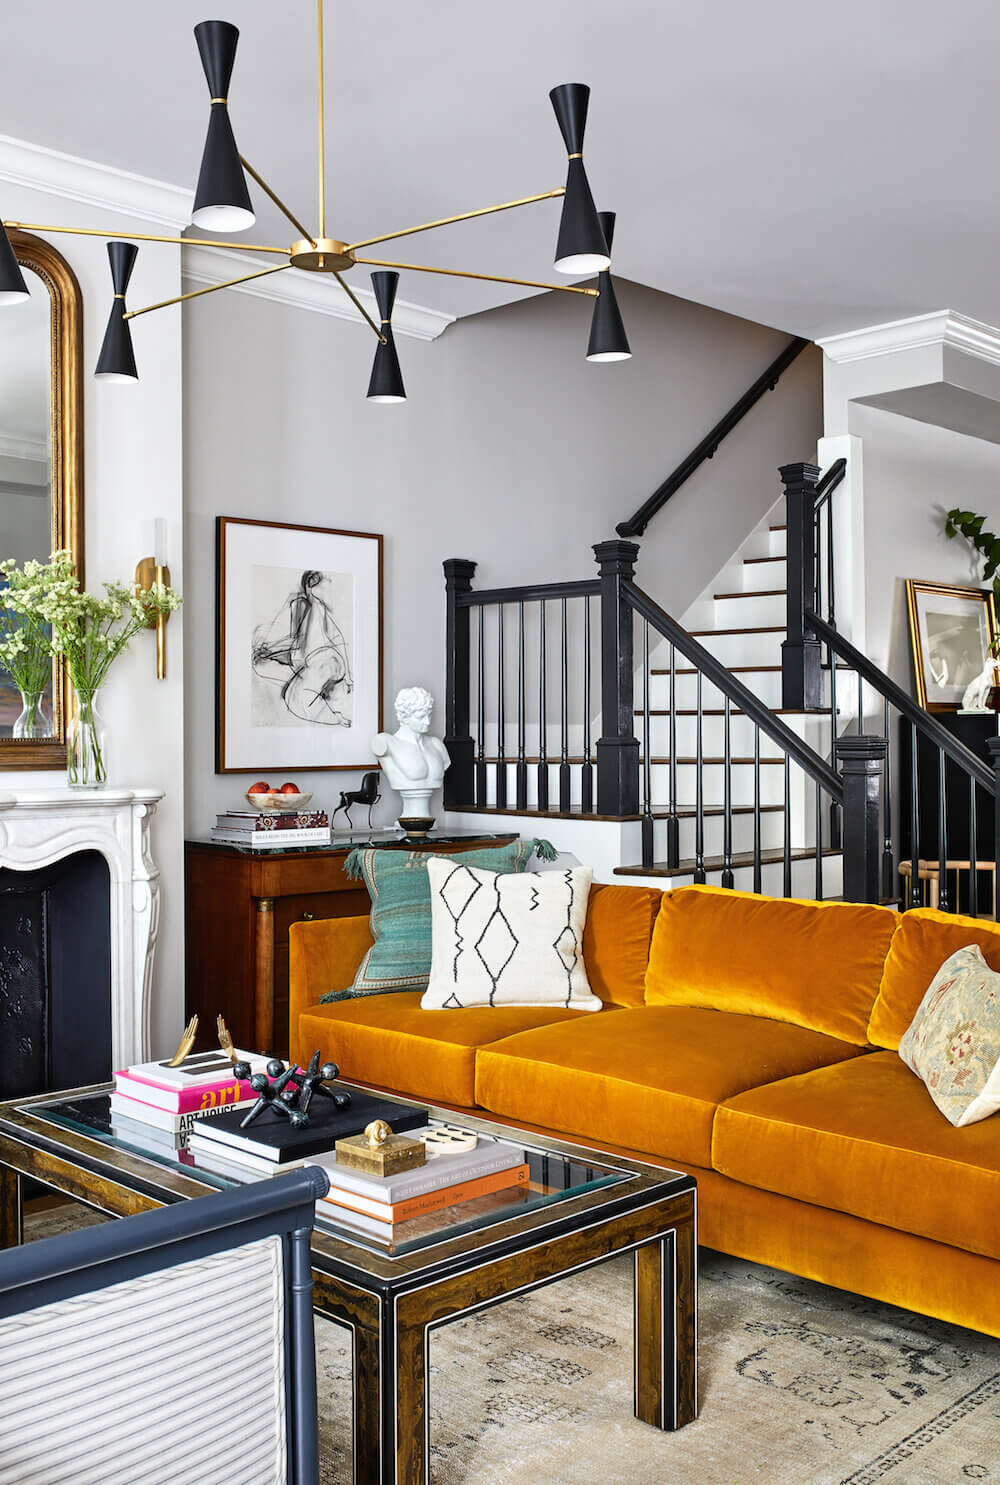 An Eclectic Washington Townhouse with Colorful Touches